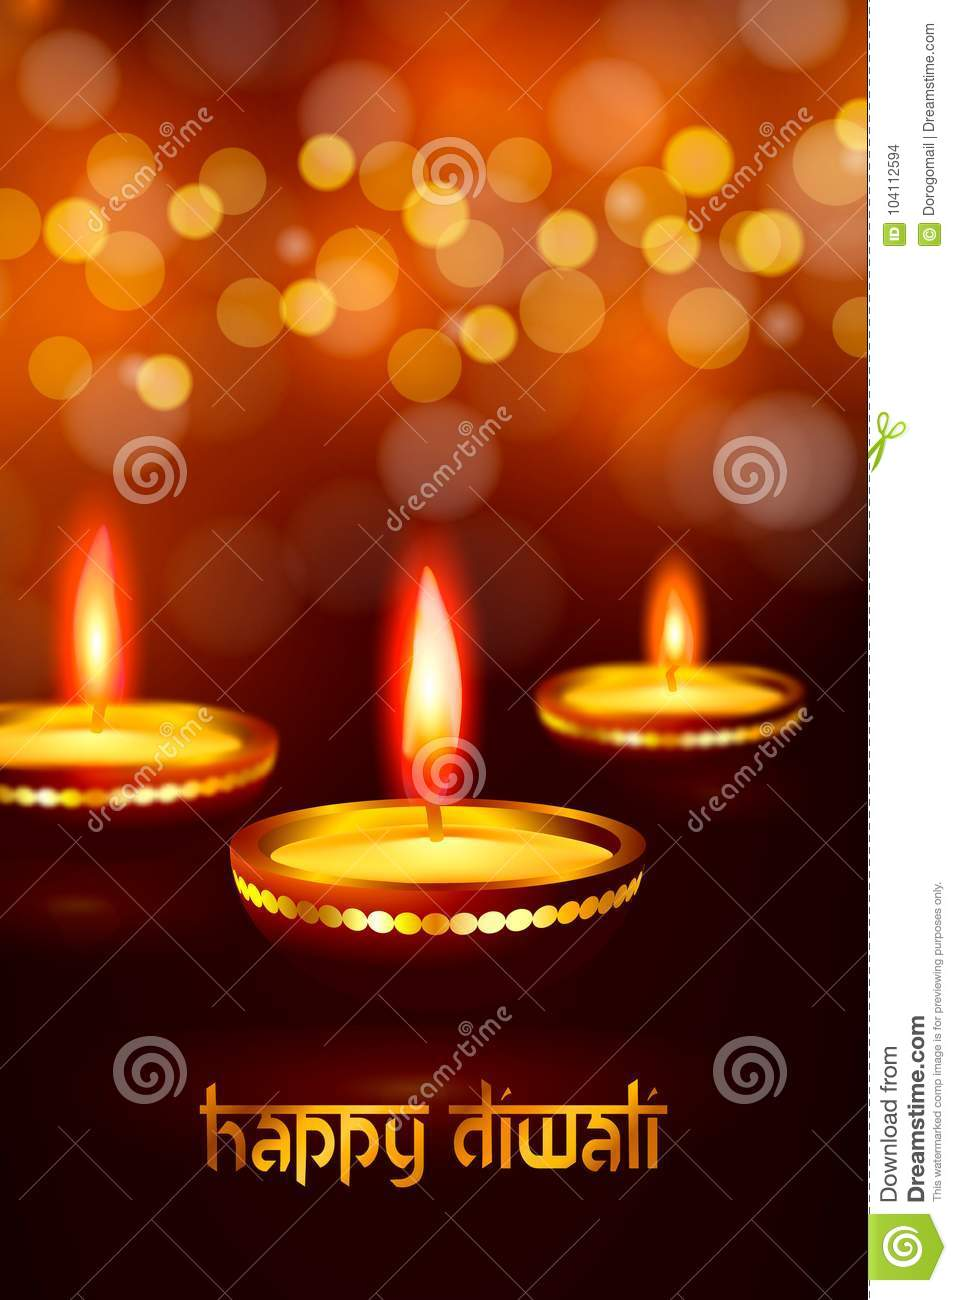 Beautiful greeting card for hindu community festival diwali happy greeting card for indian deepavali hindu festival happy diwali design greeting card with lamps candle light flame with blur effect background and m4hsunfo